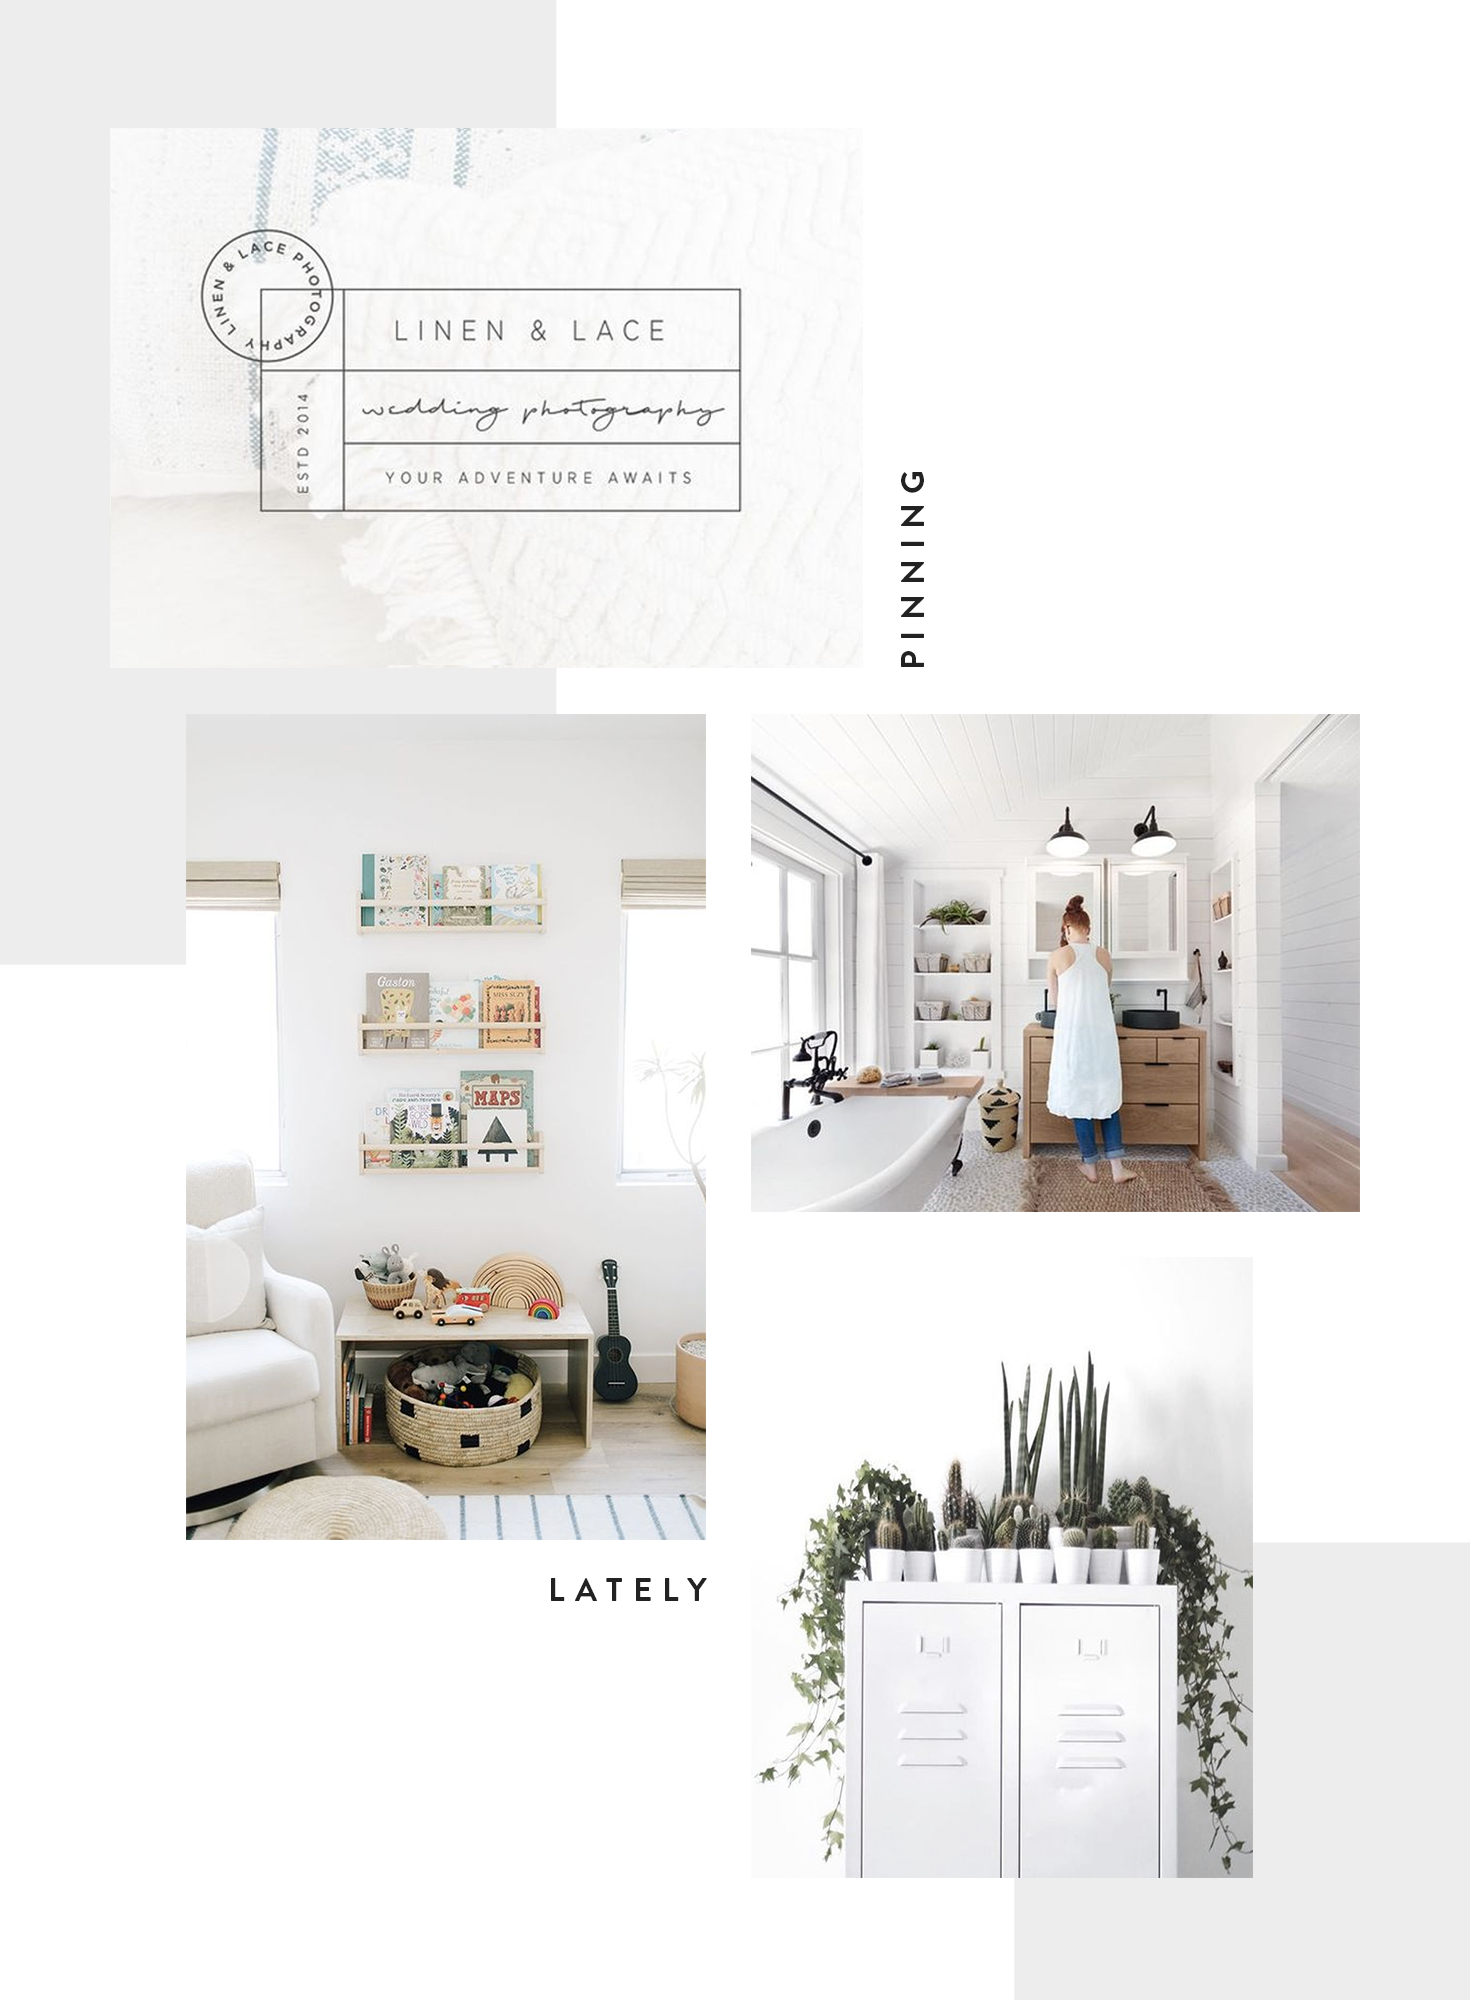 PINNING LATELY // KORY WOODARD